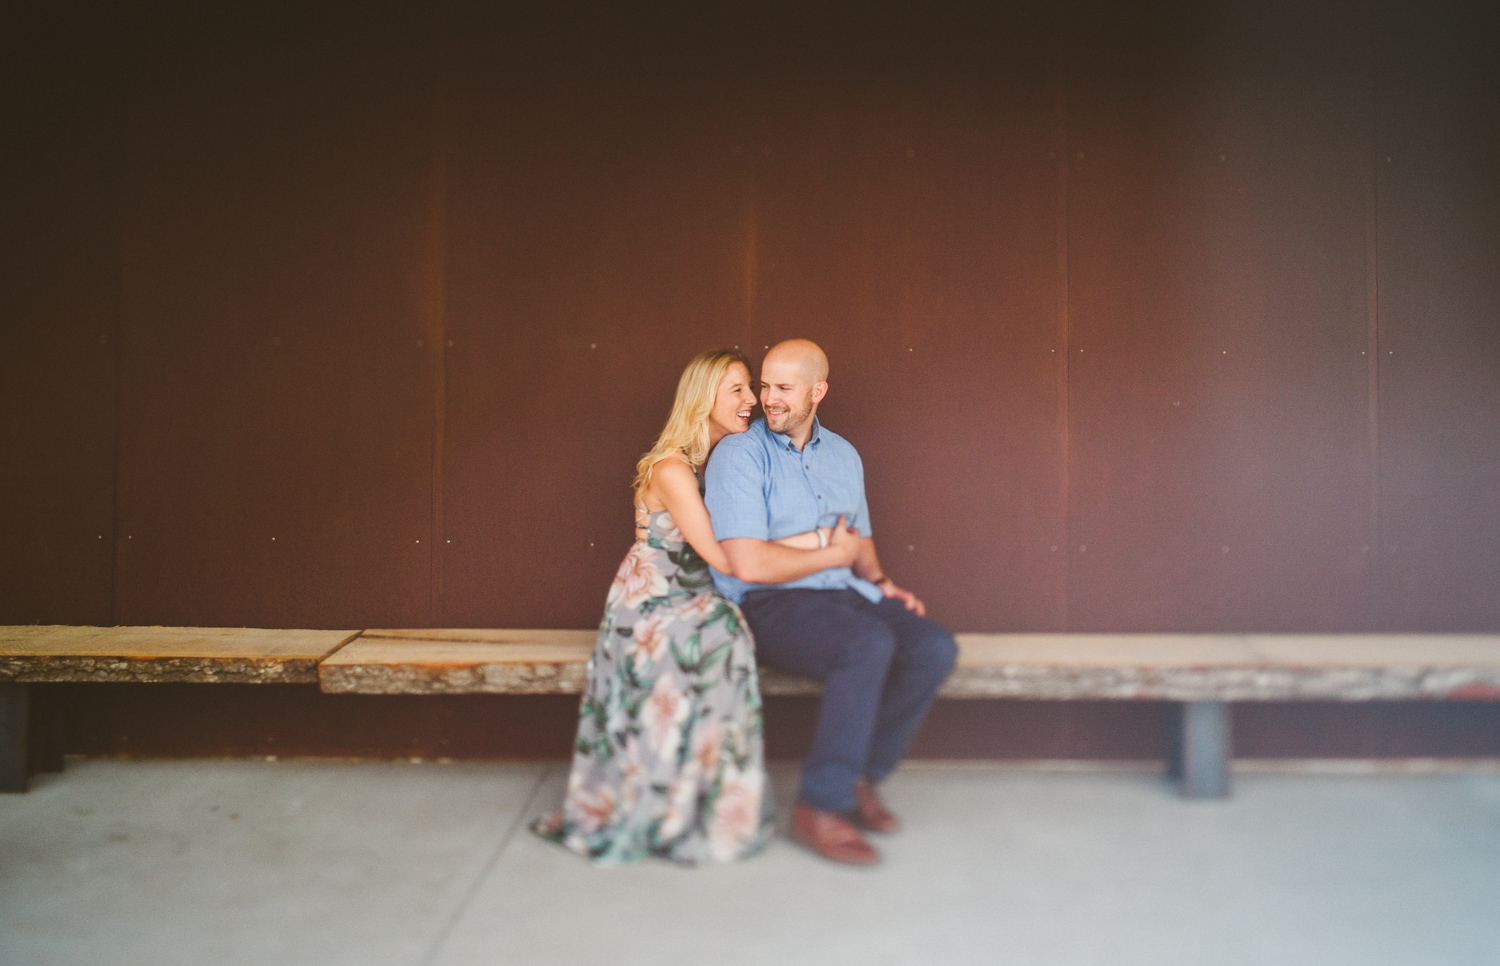 010 - freelens richmond engagement photo against red wall.jpg